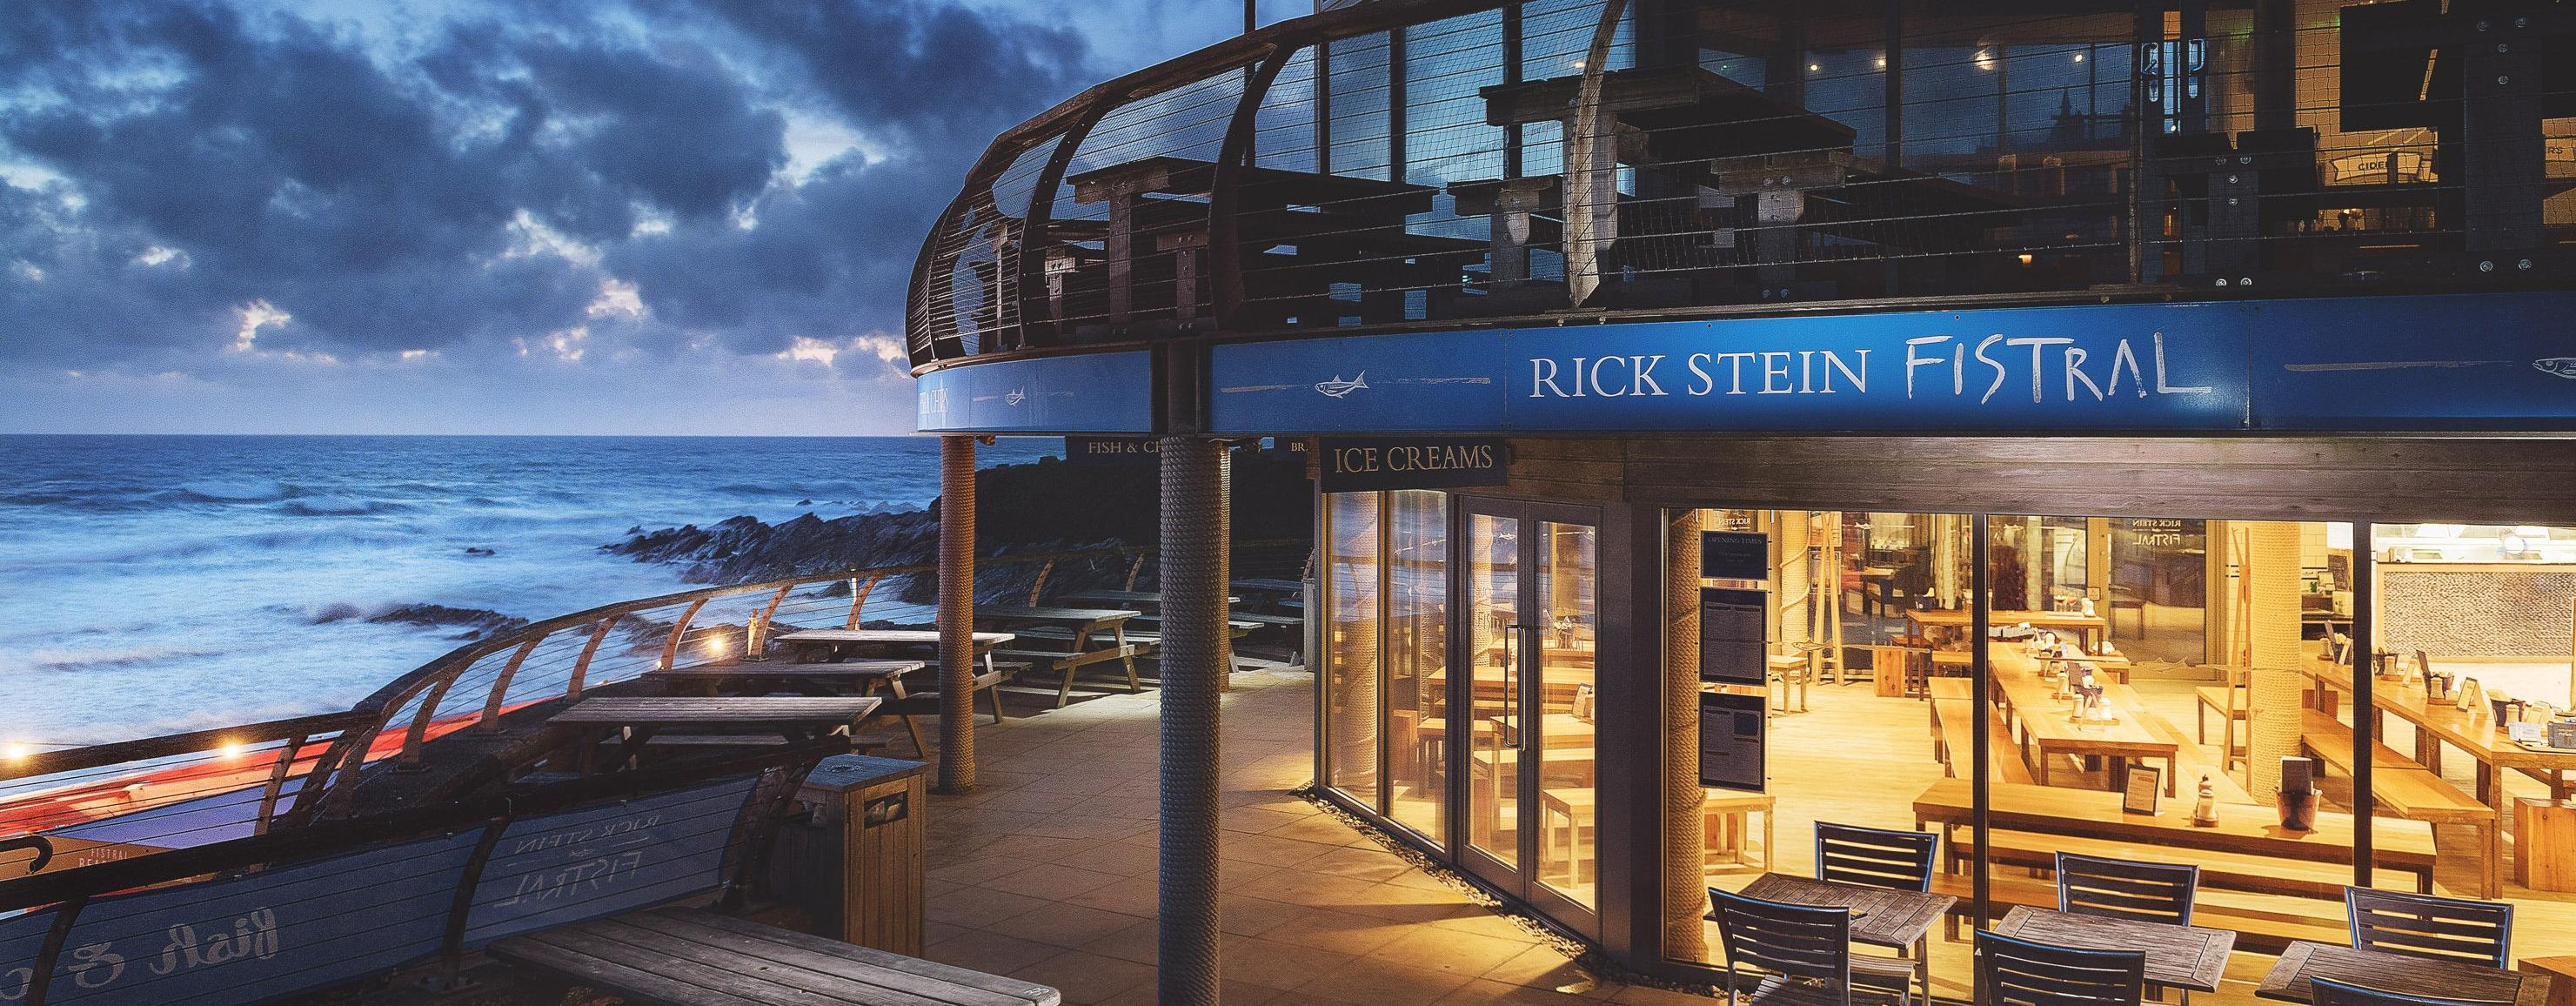 Rick Stein Fistral Brand Cover